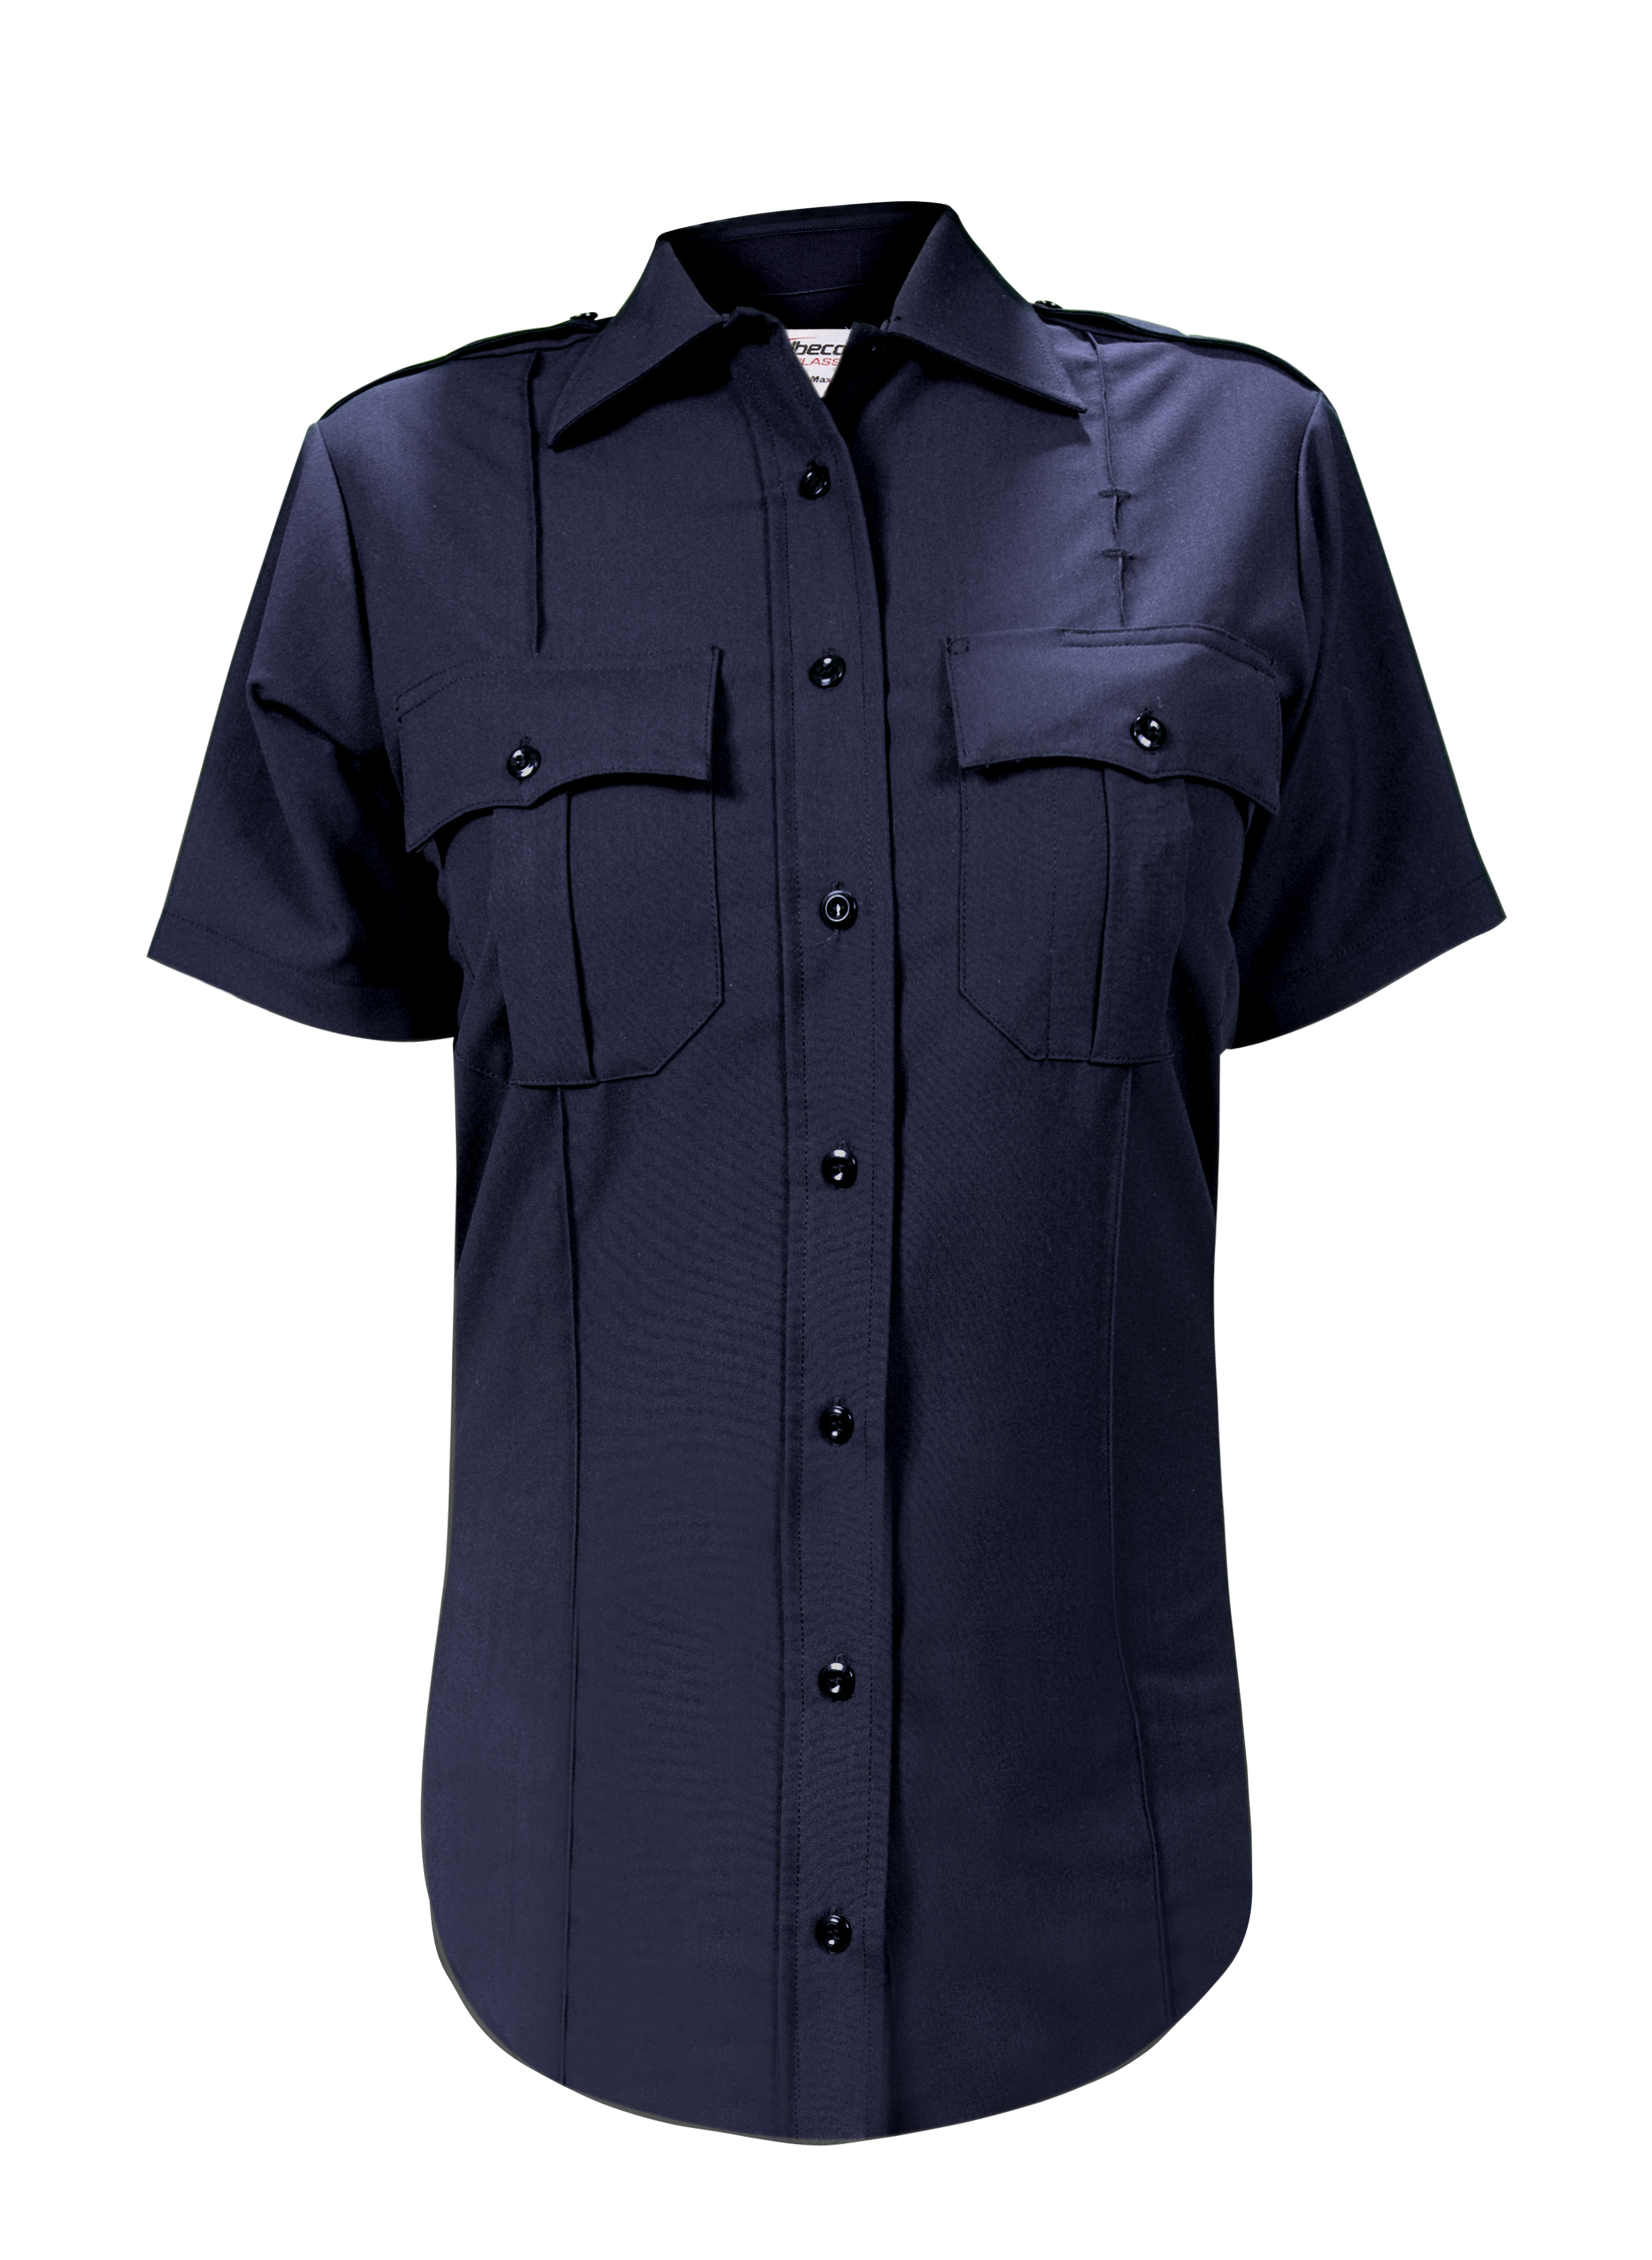 6b033e31f743 Lockhart Tactical | Military and Police Discounts up to 60% OFF ...